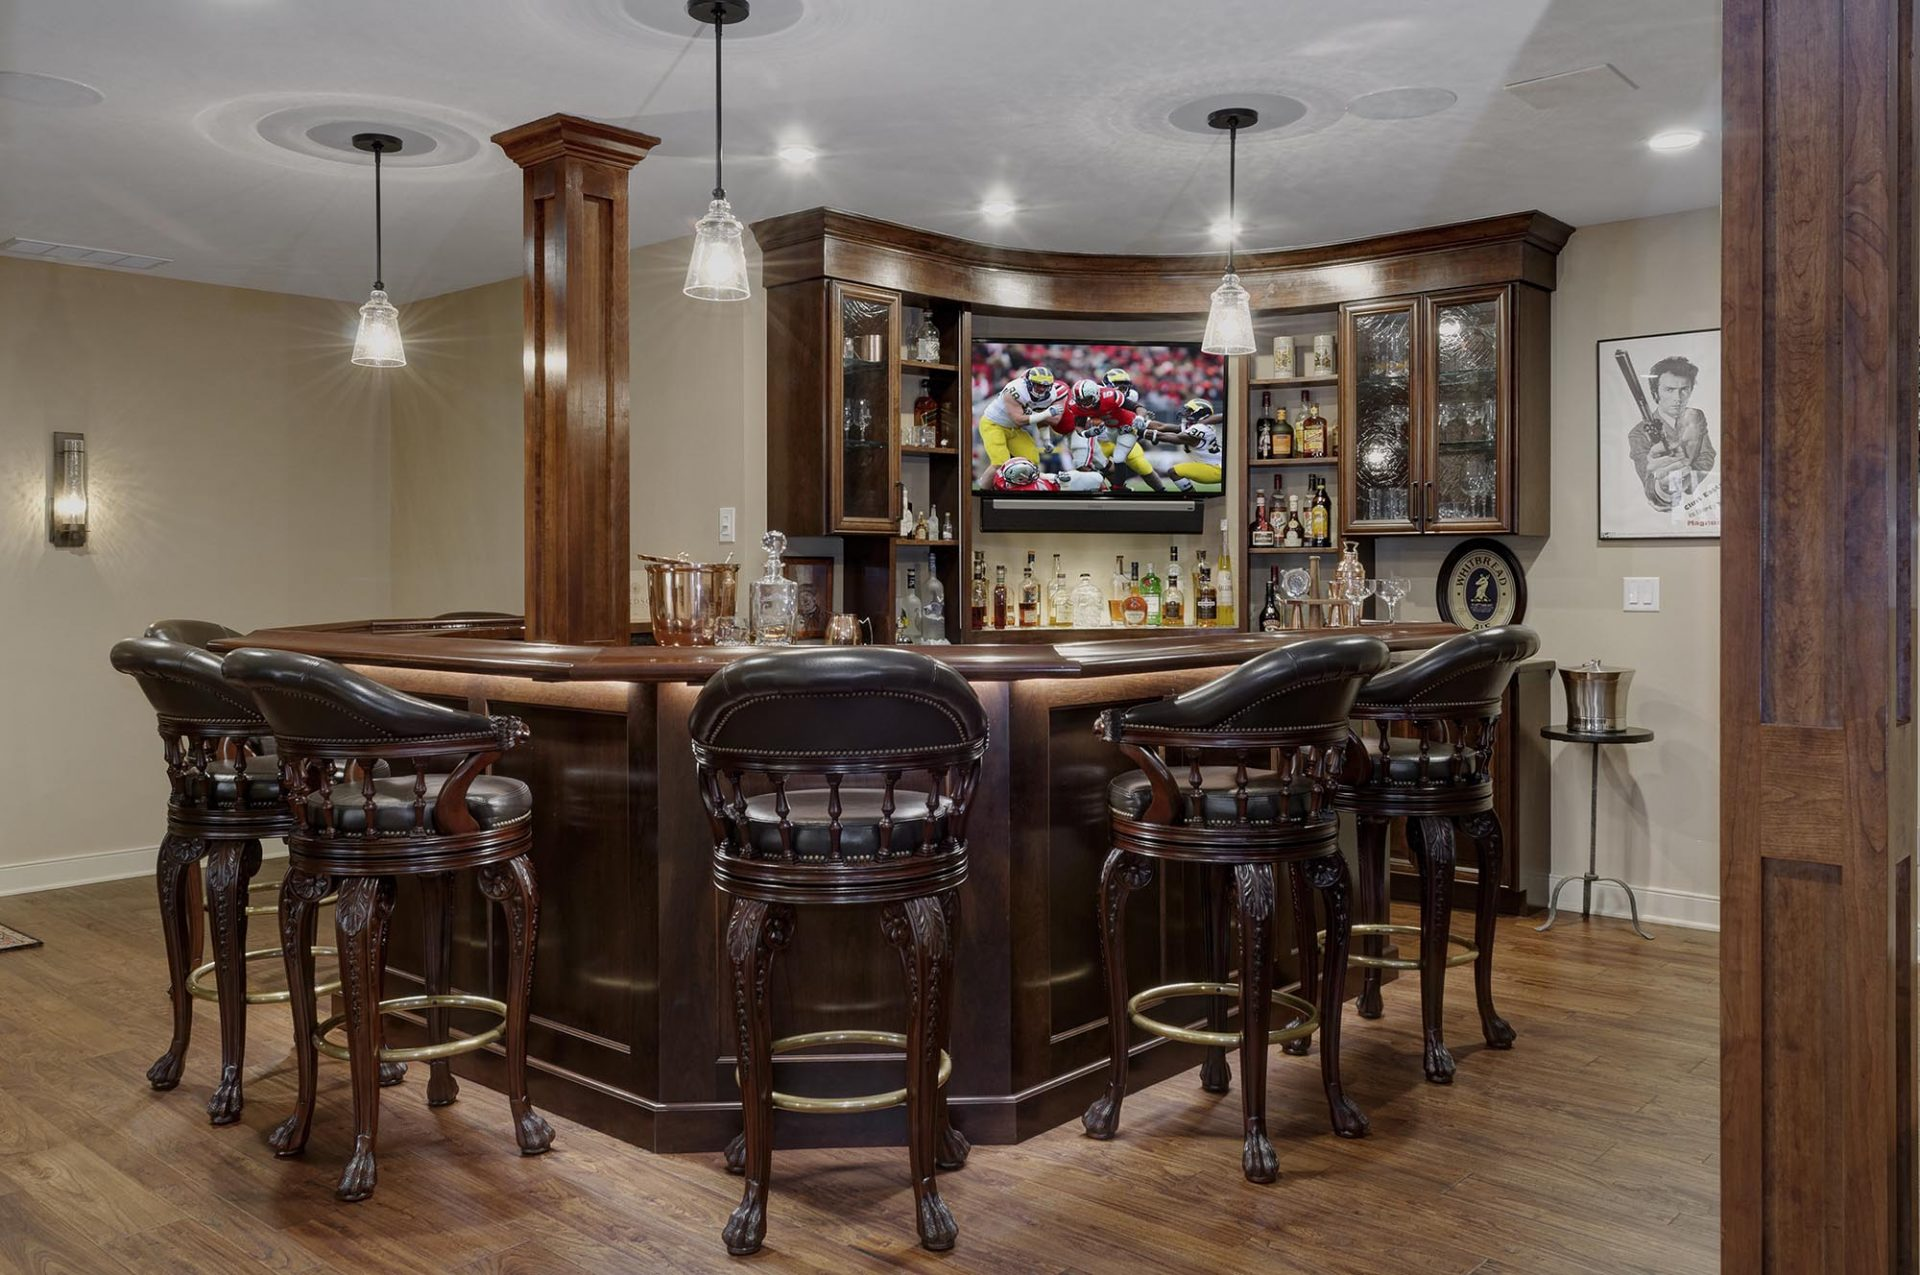 Basement design, Sunbury, Dave Fox, Remodel, bar, wood, wine cellar, stacked stone, fireplace